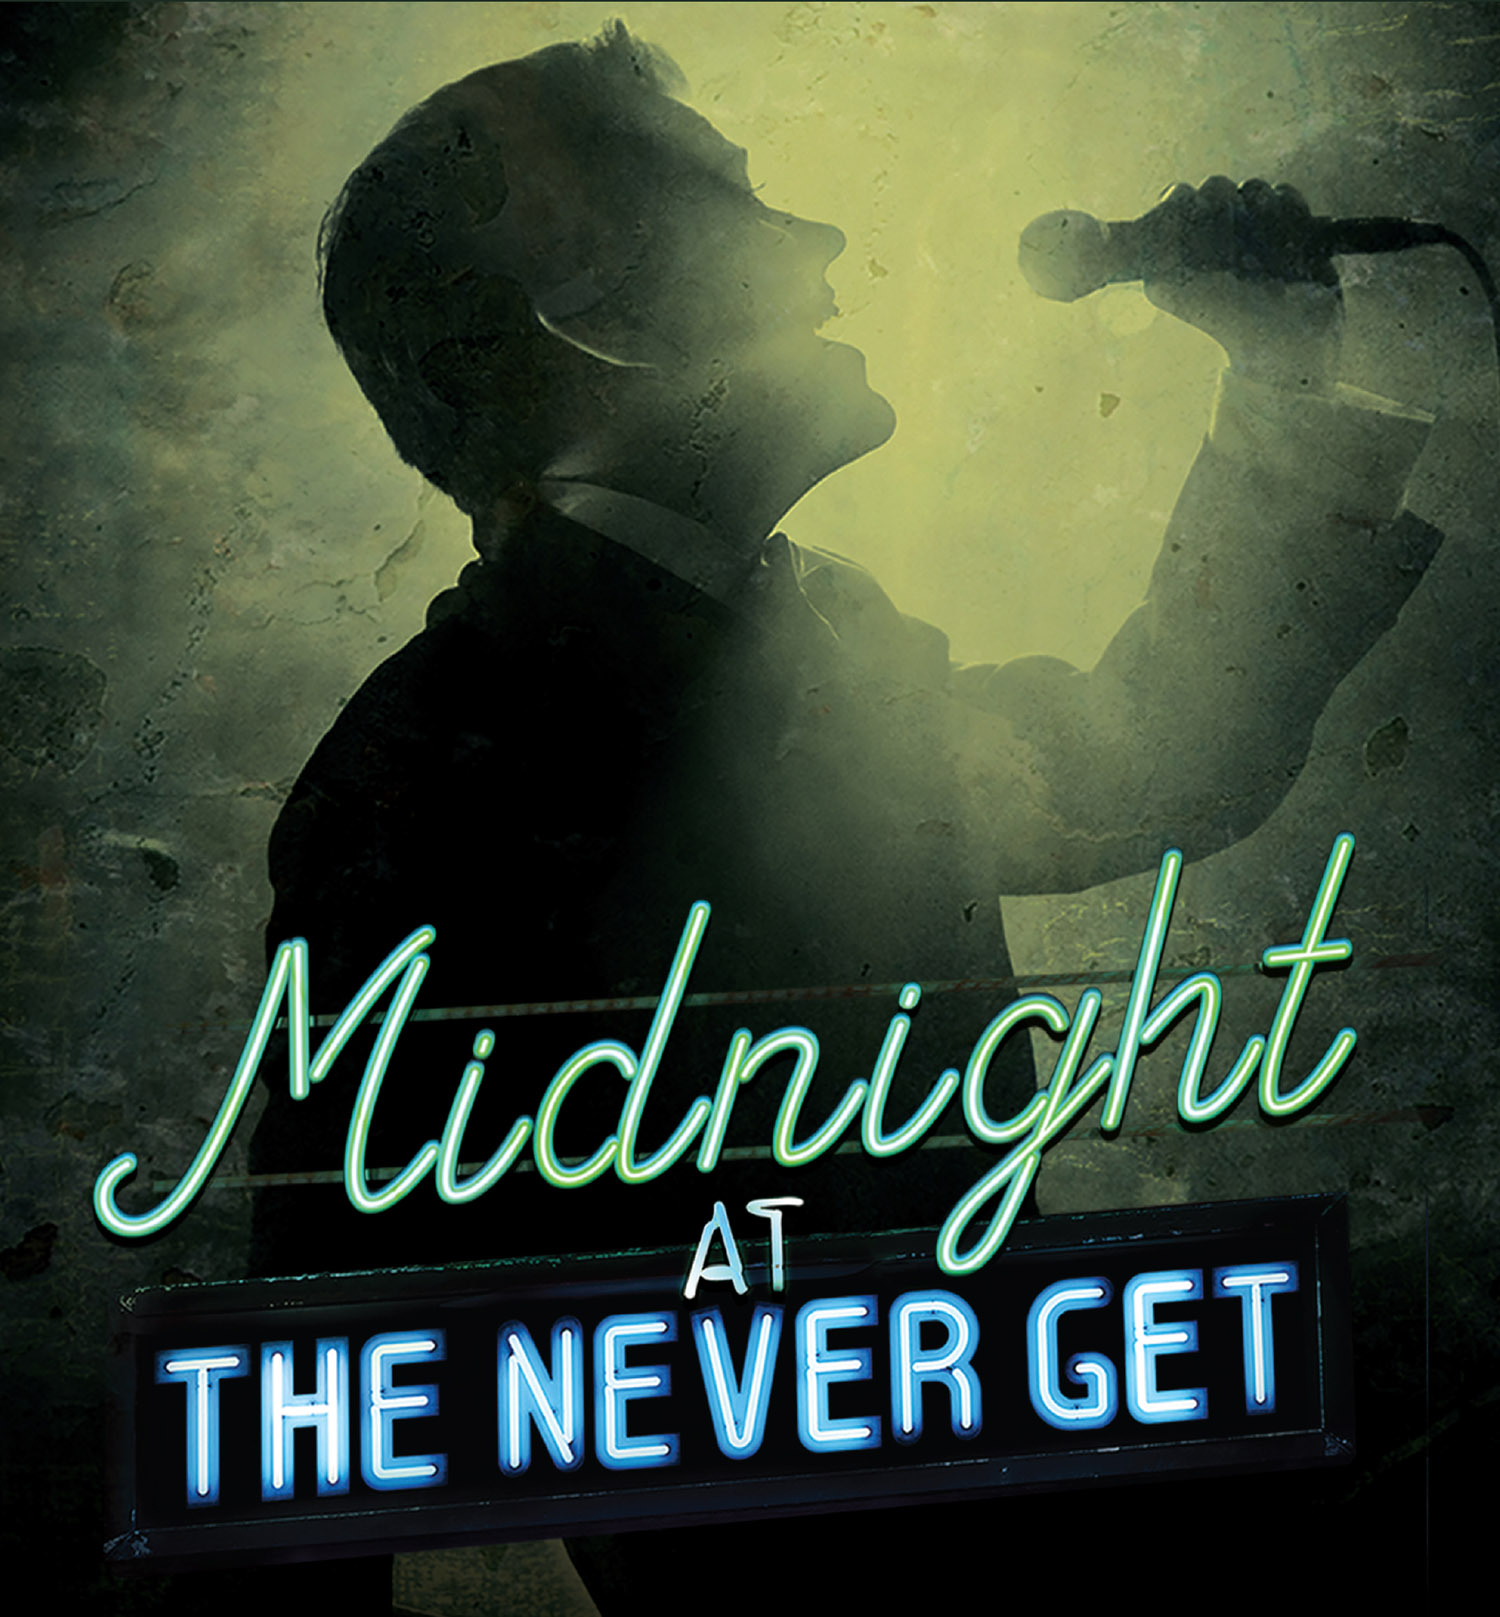 3.-Midnight-at-The-Never-Get-promo-image.jpg